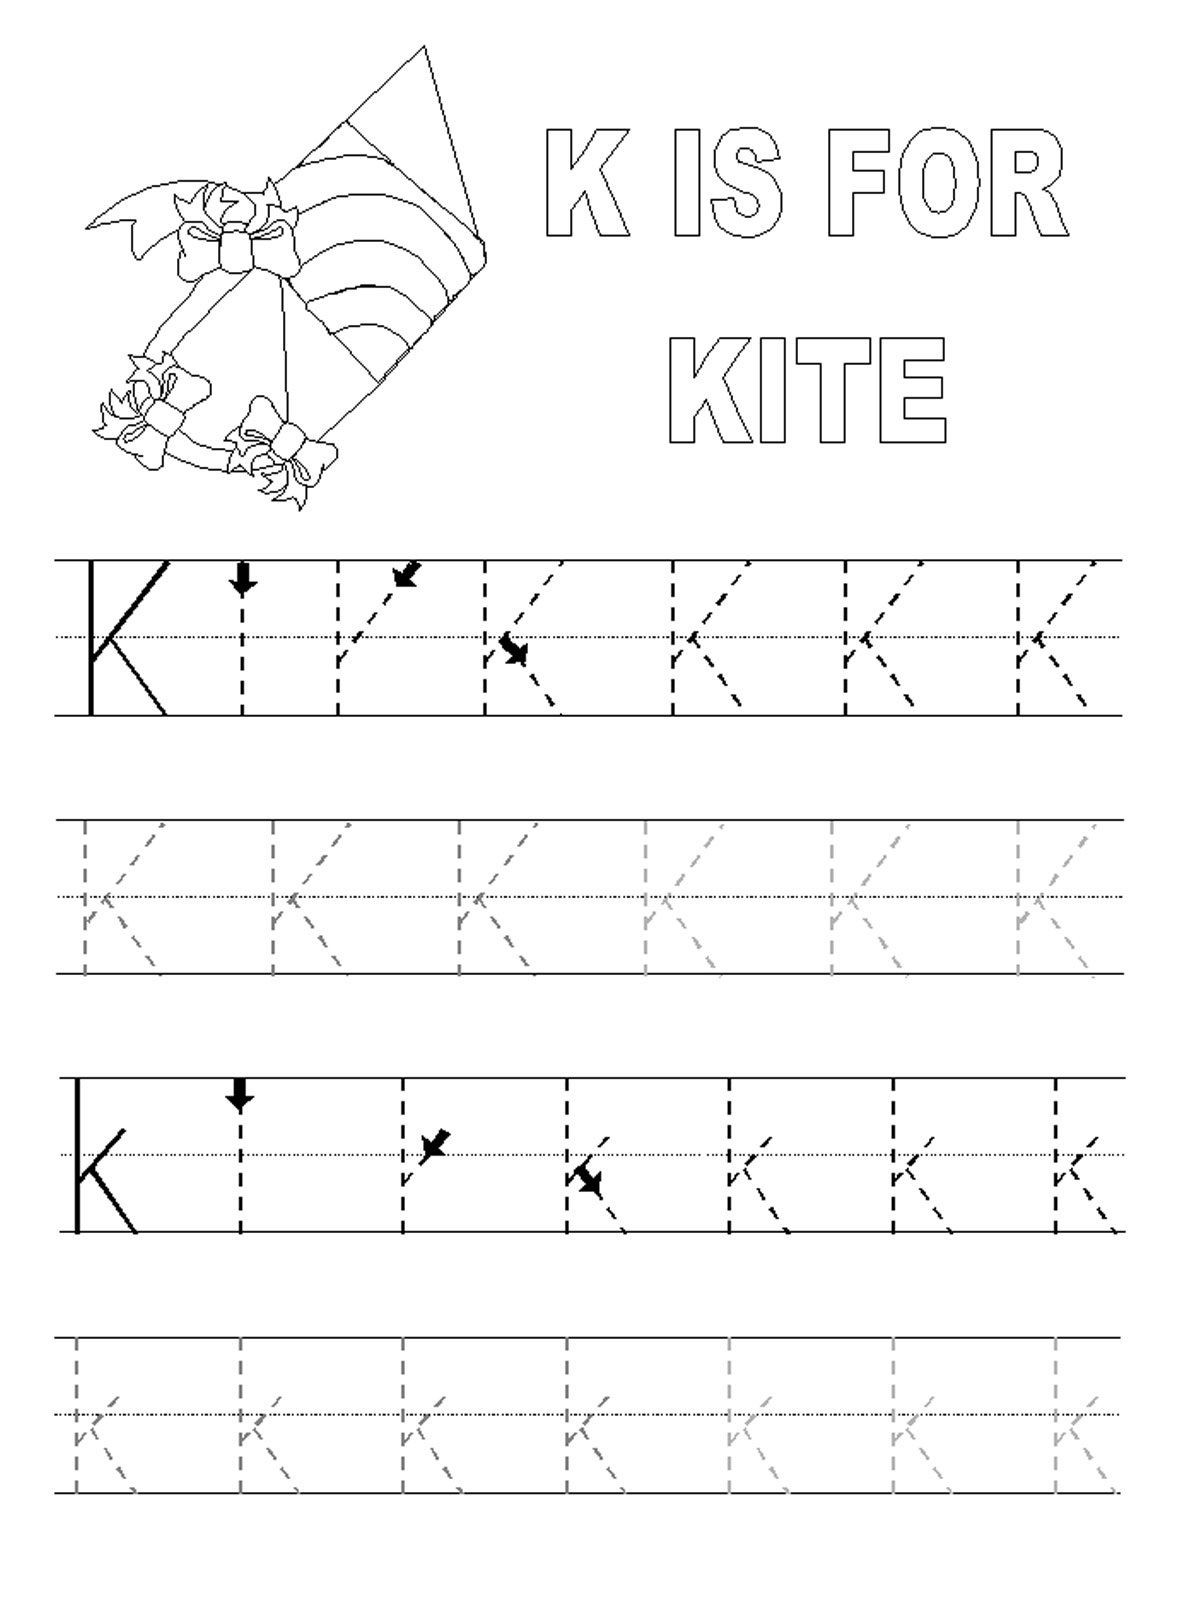 Letter K Tracing Worksheets Preschool Printable Alphabet Tracing Pages with Images